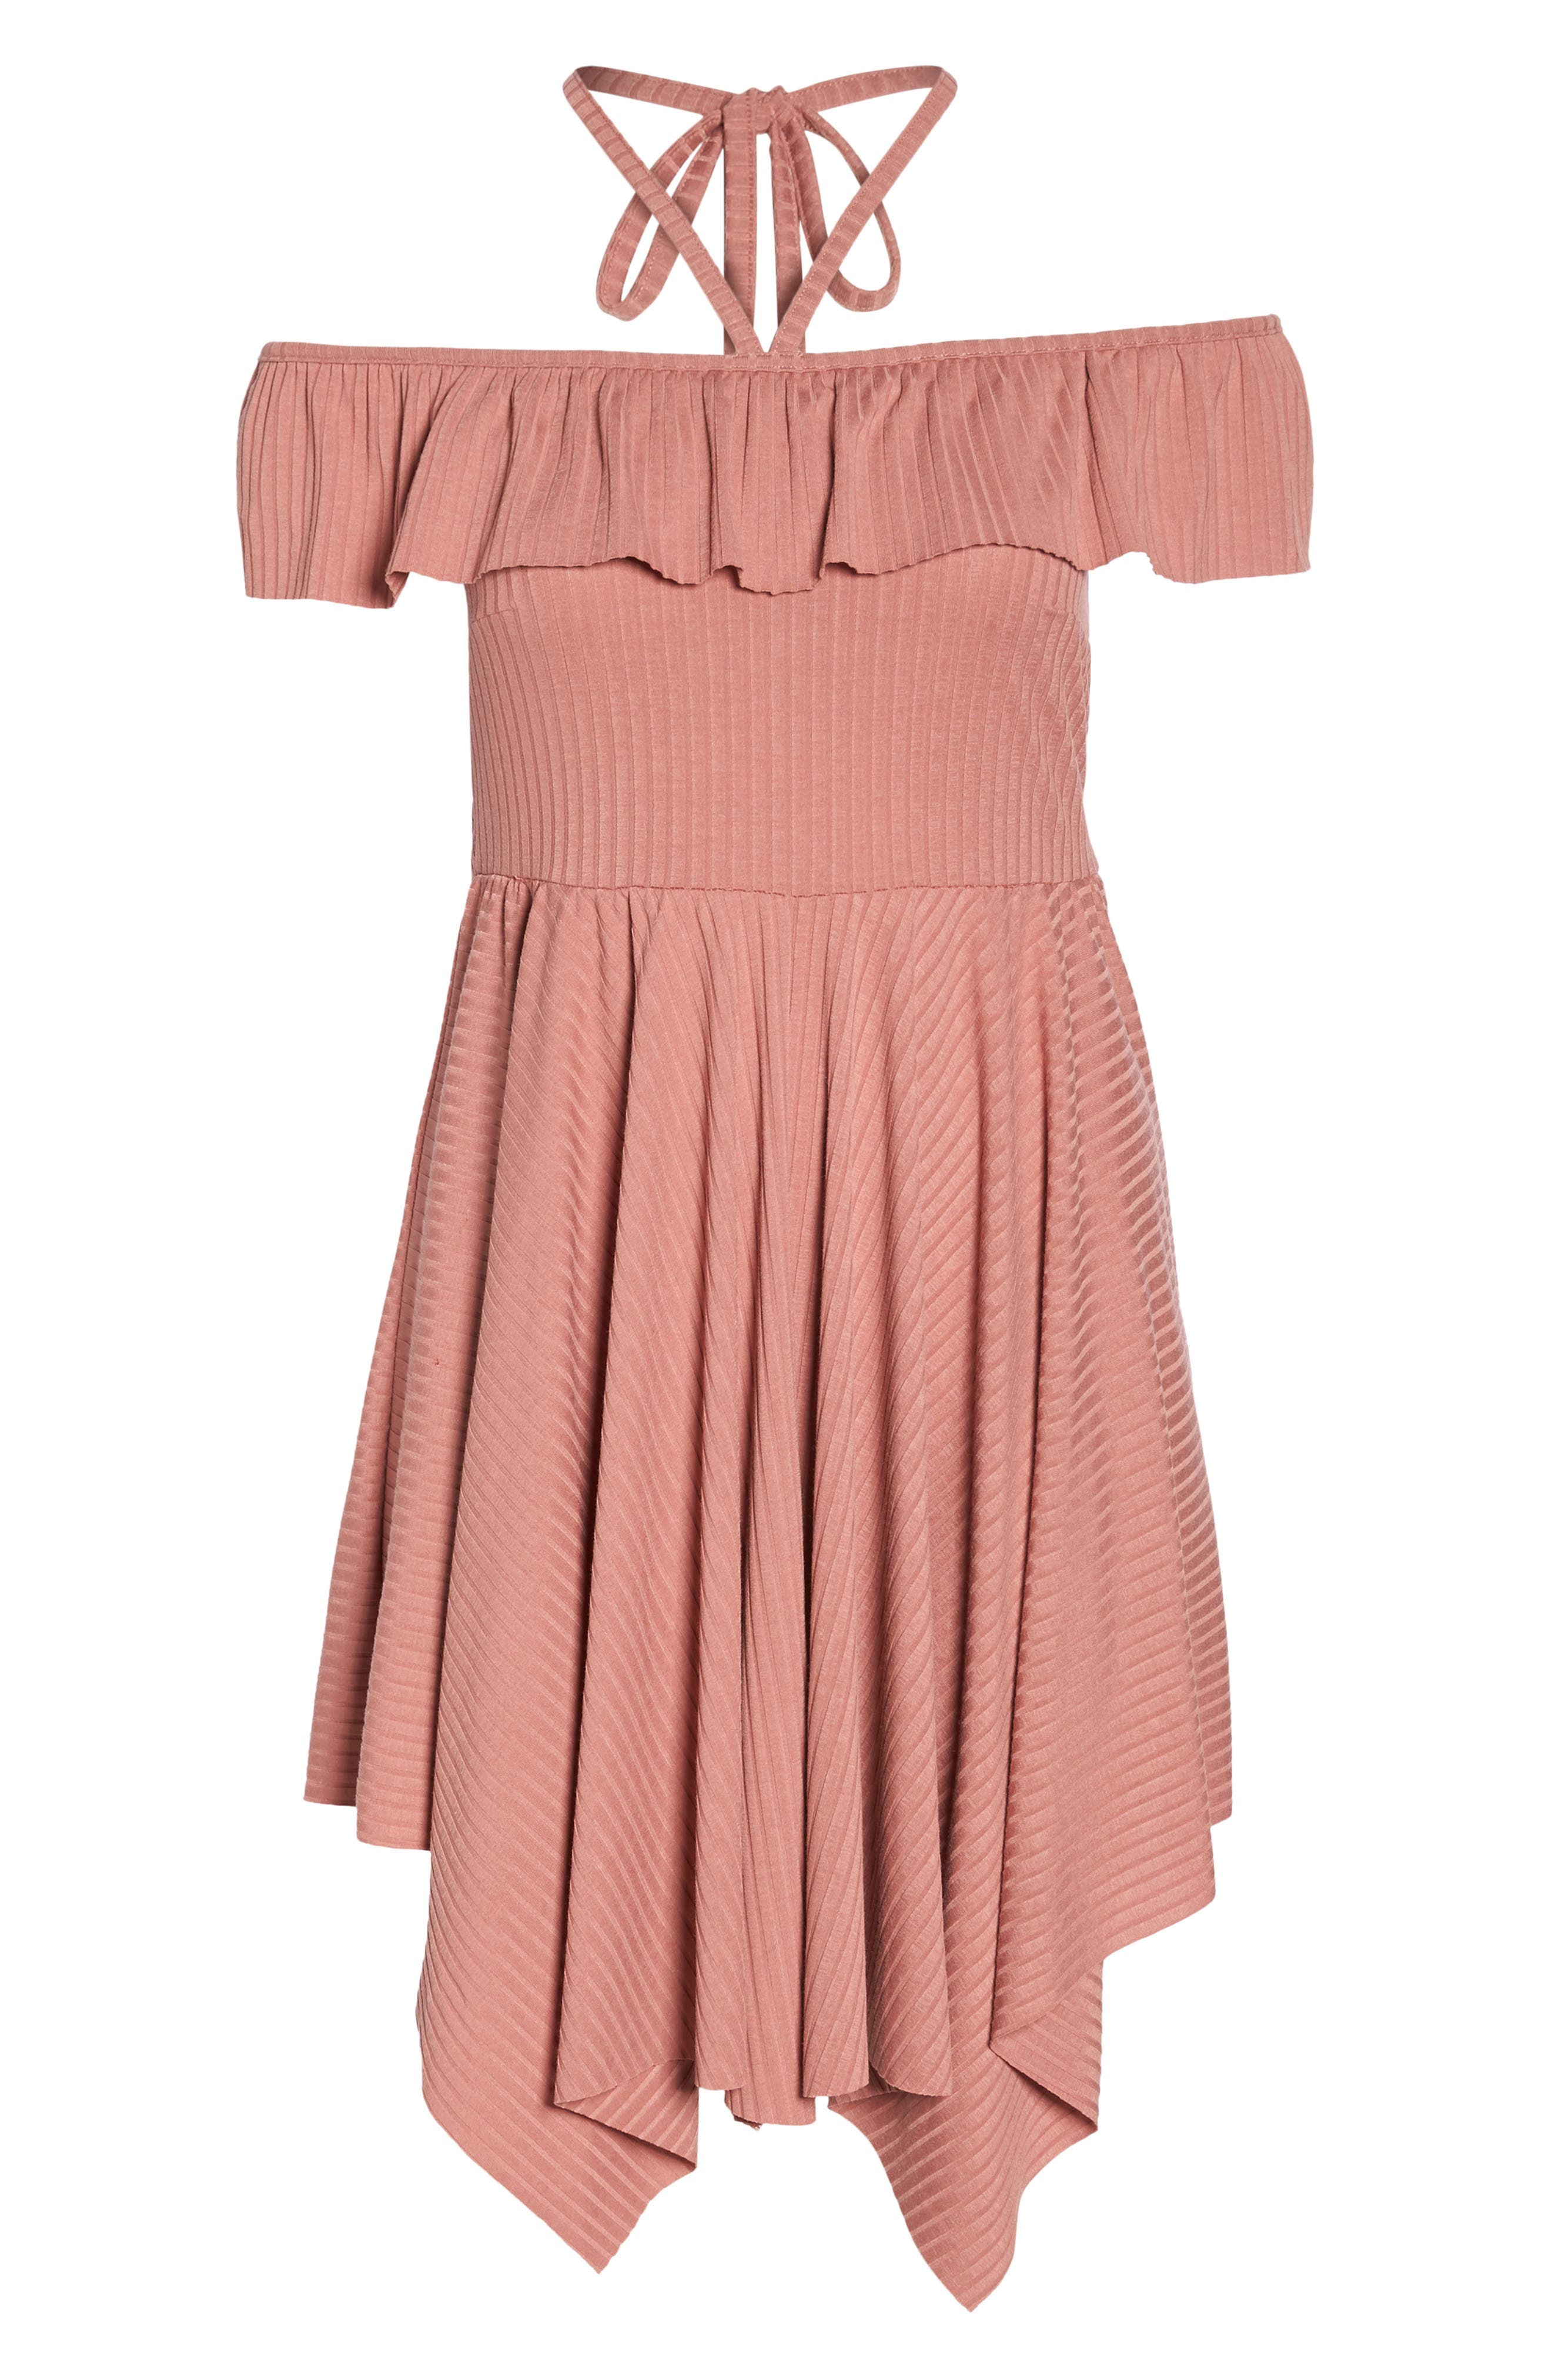 Asymmetrical Ribbed Off the Shoulder Dress,                             Alternate thumbnail 7, color,                             Blush